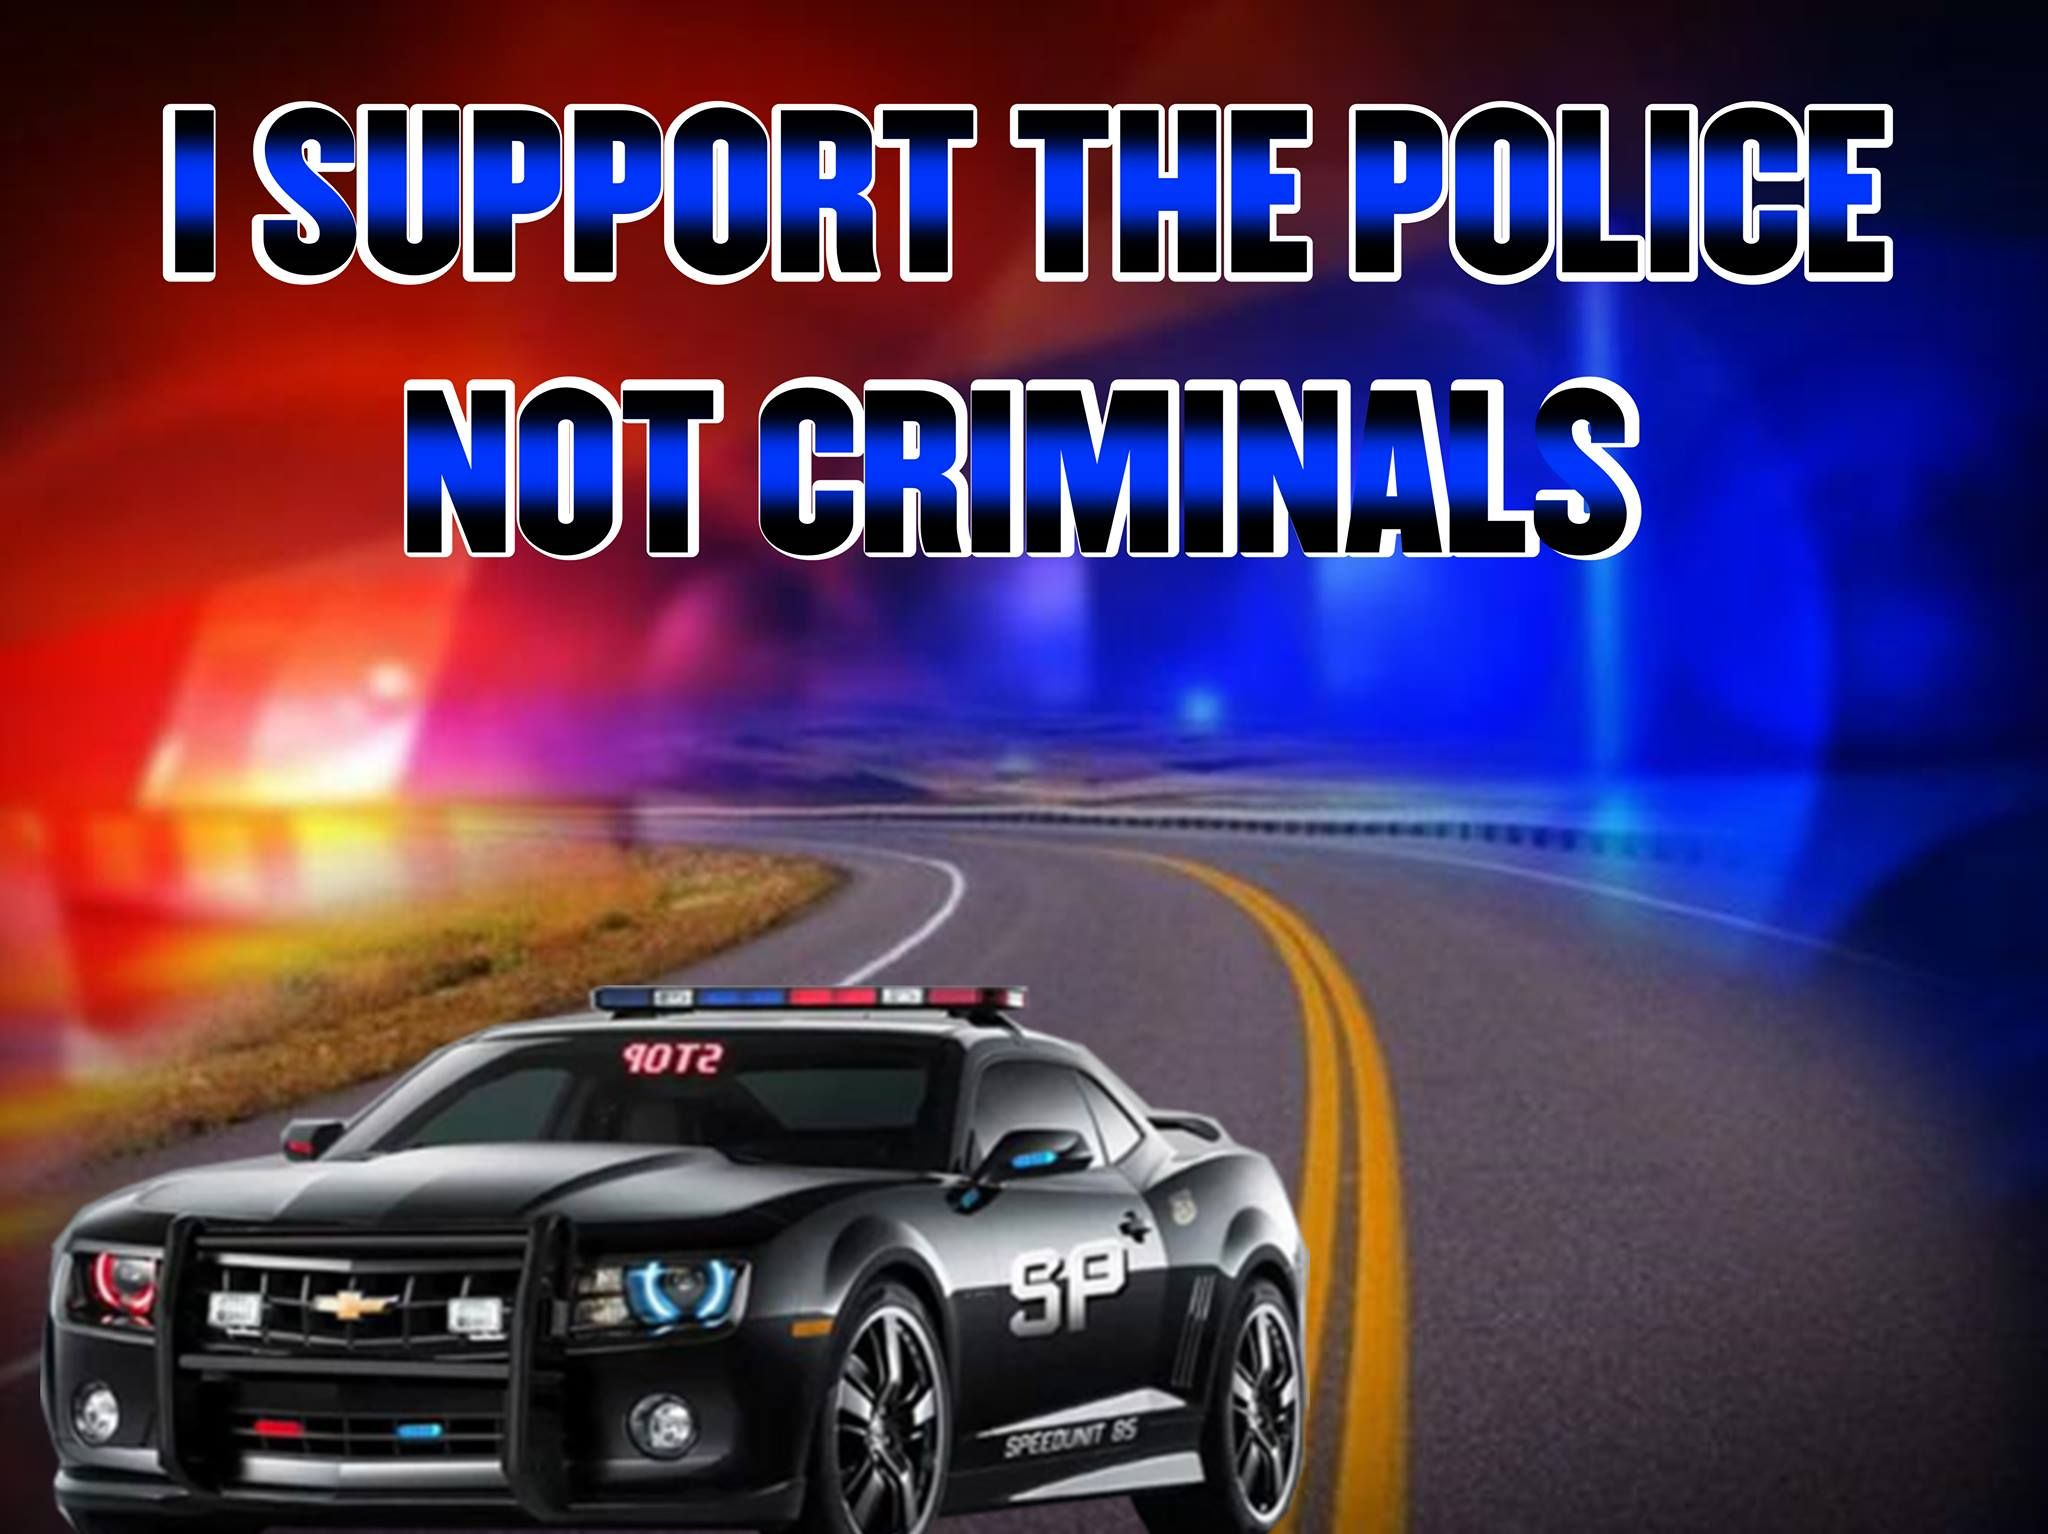 15896400_624438874410894_1107245848037121959_o      from: I support the police Facebook